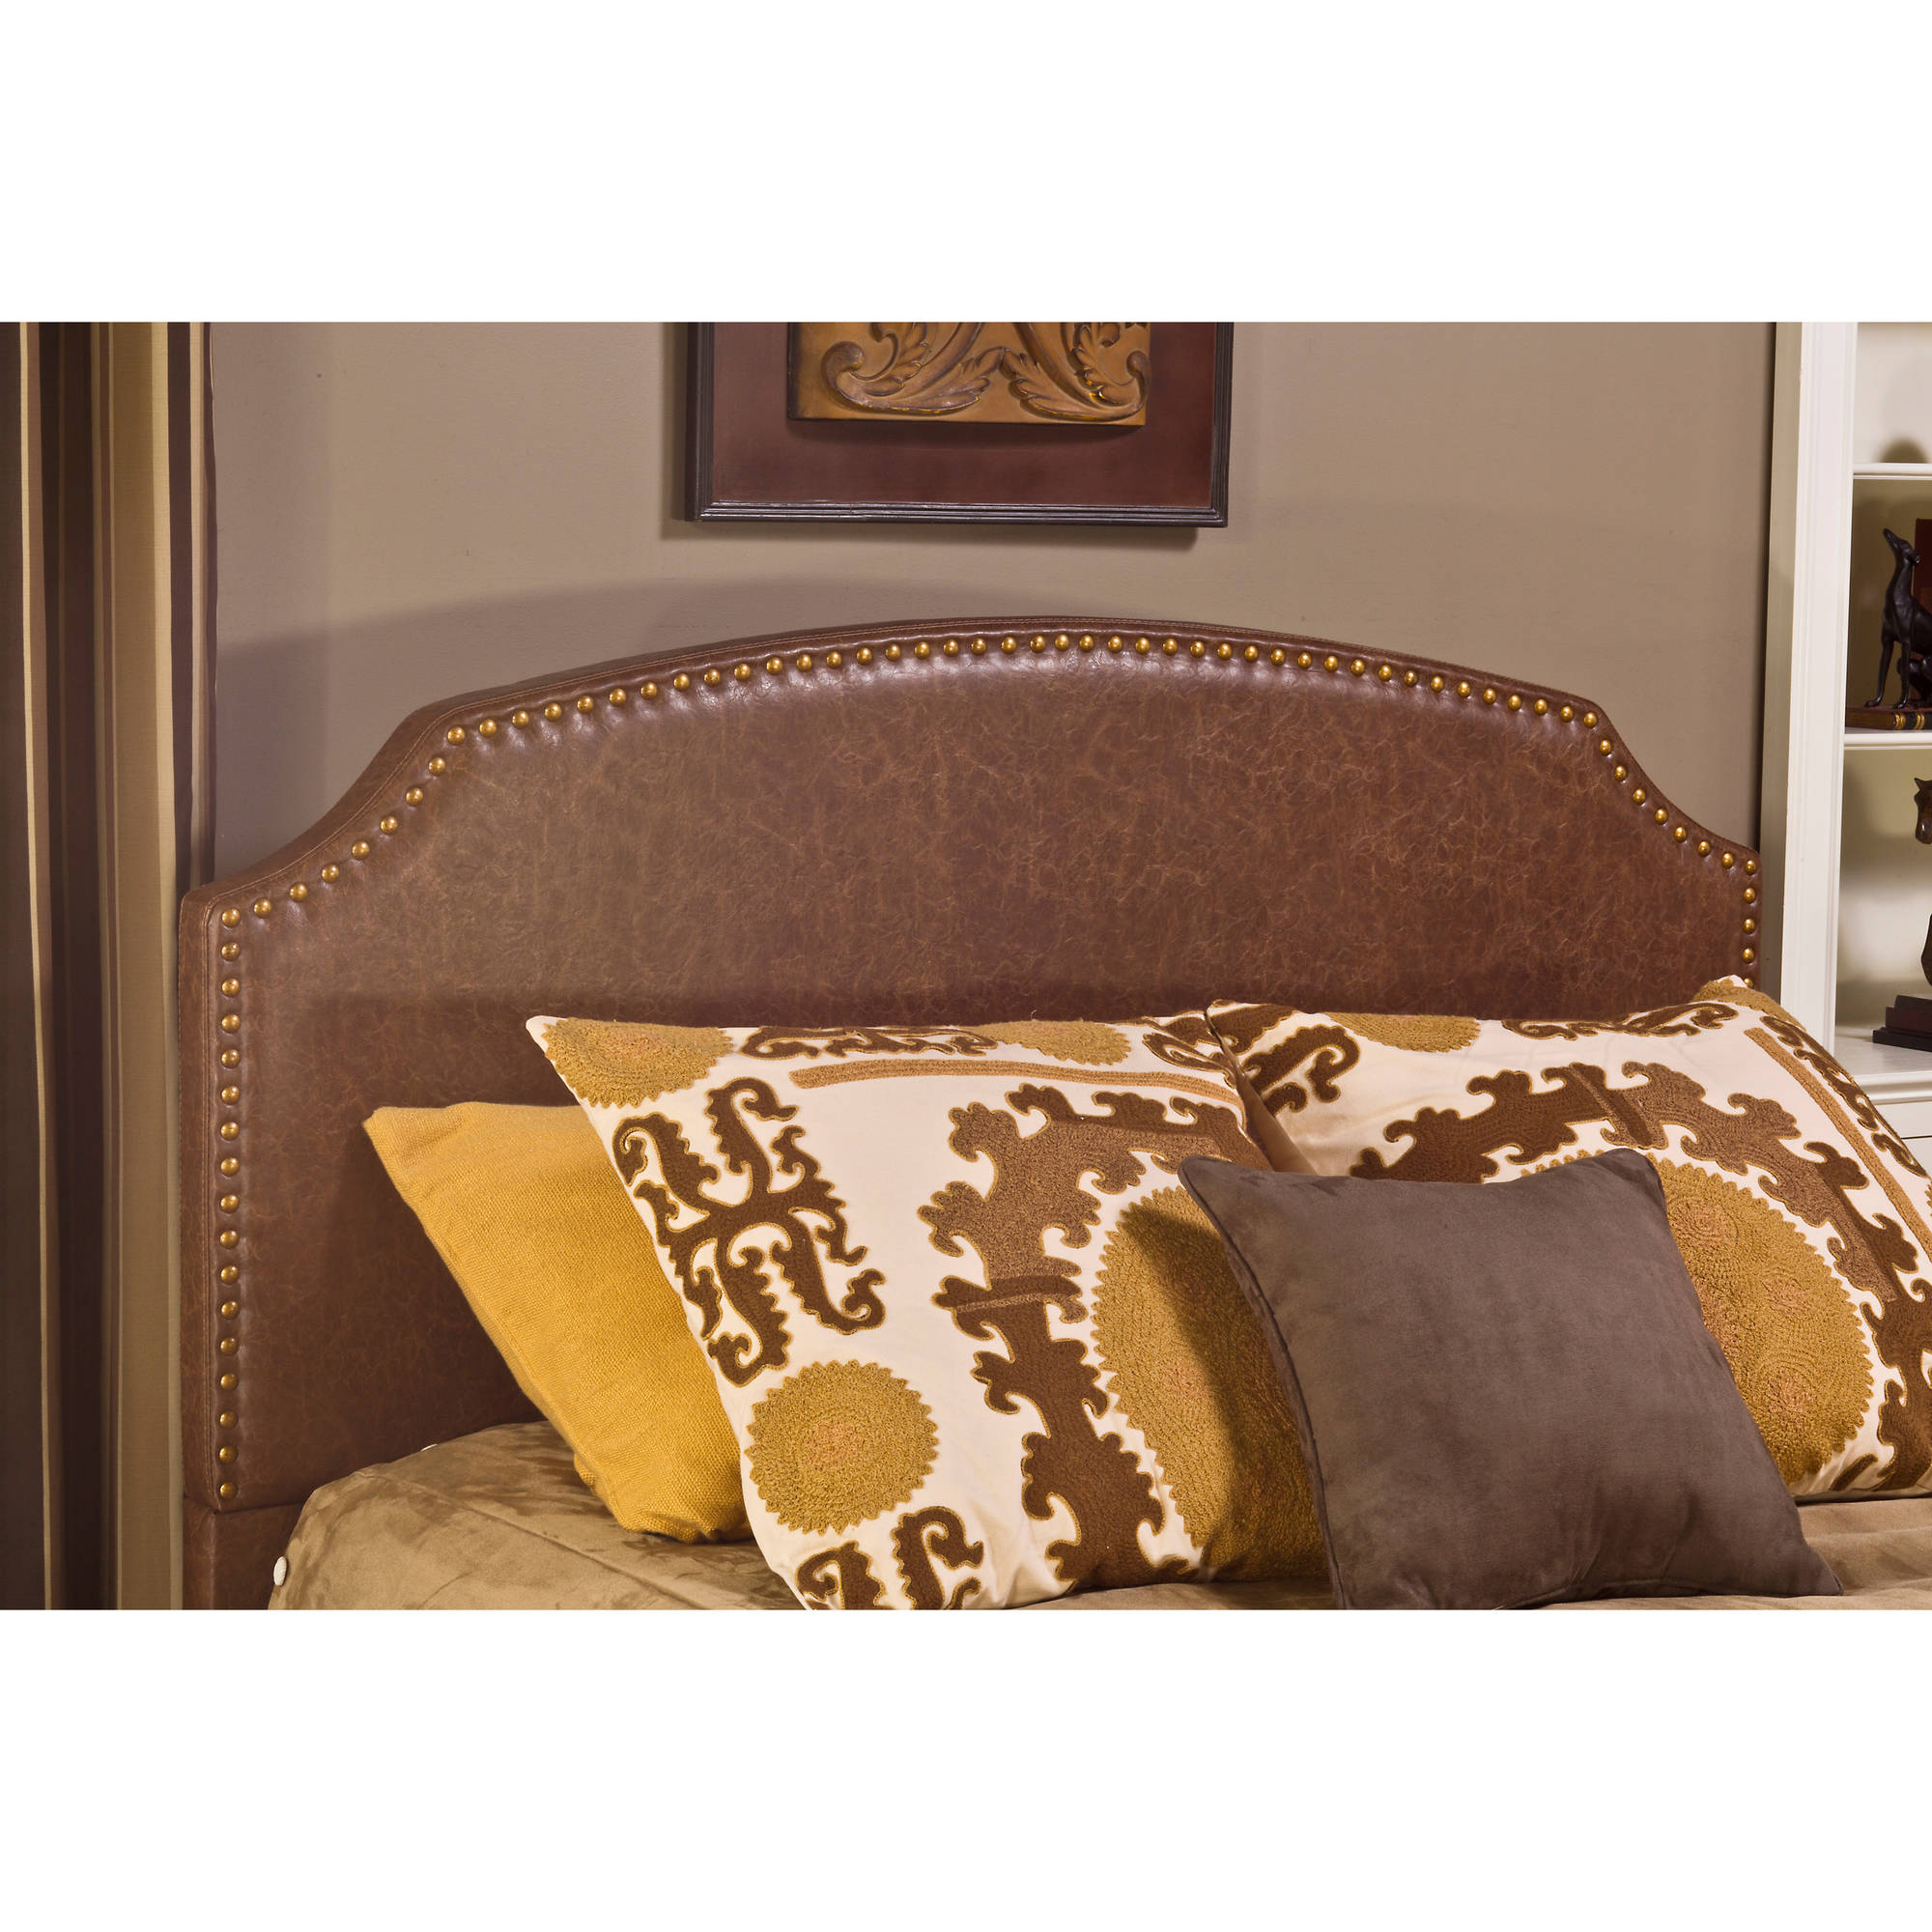 Hillsdale Furniture Durango Queen Headboard with Bedframe, Brown Faux Leather